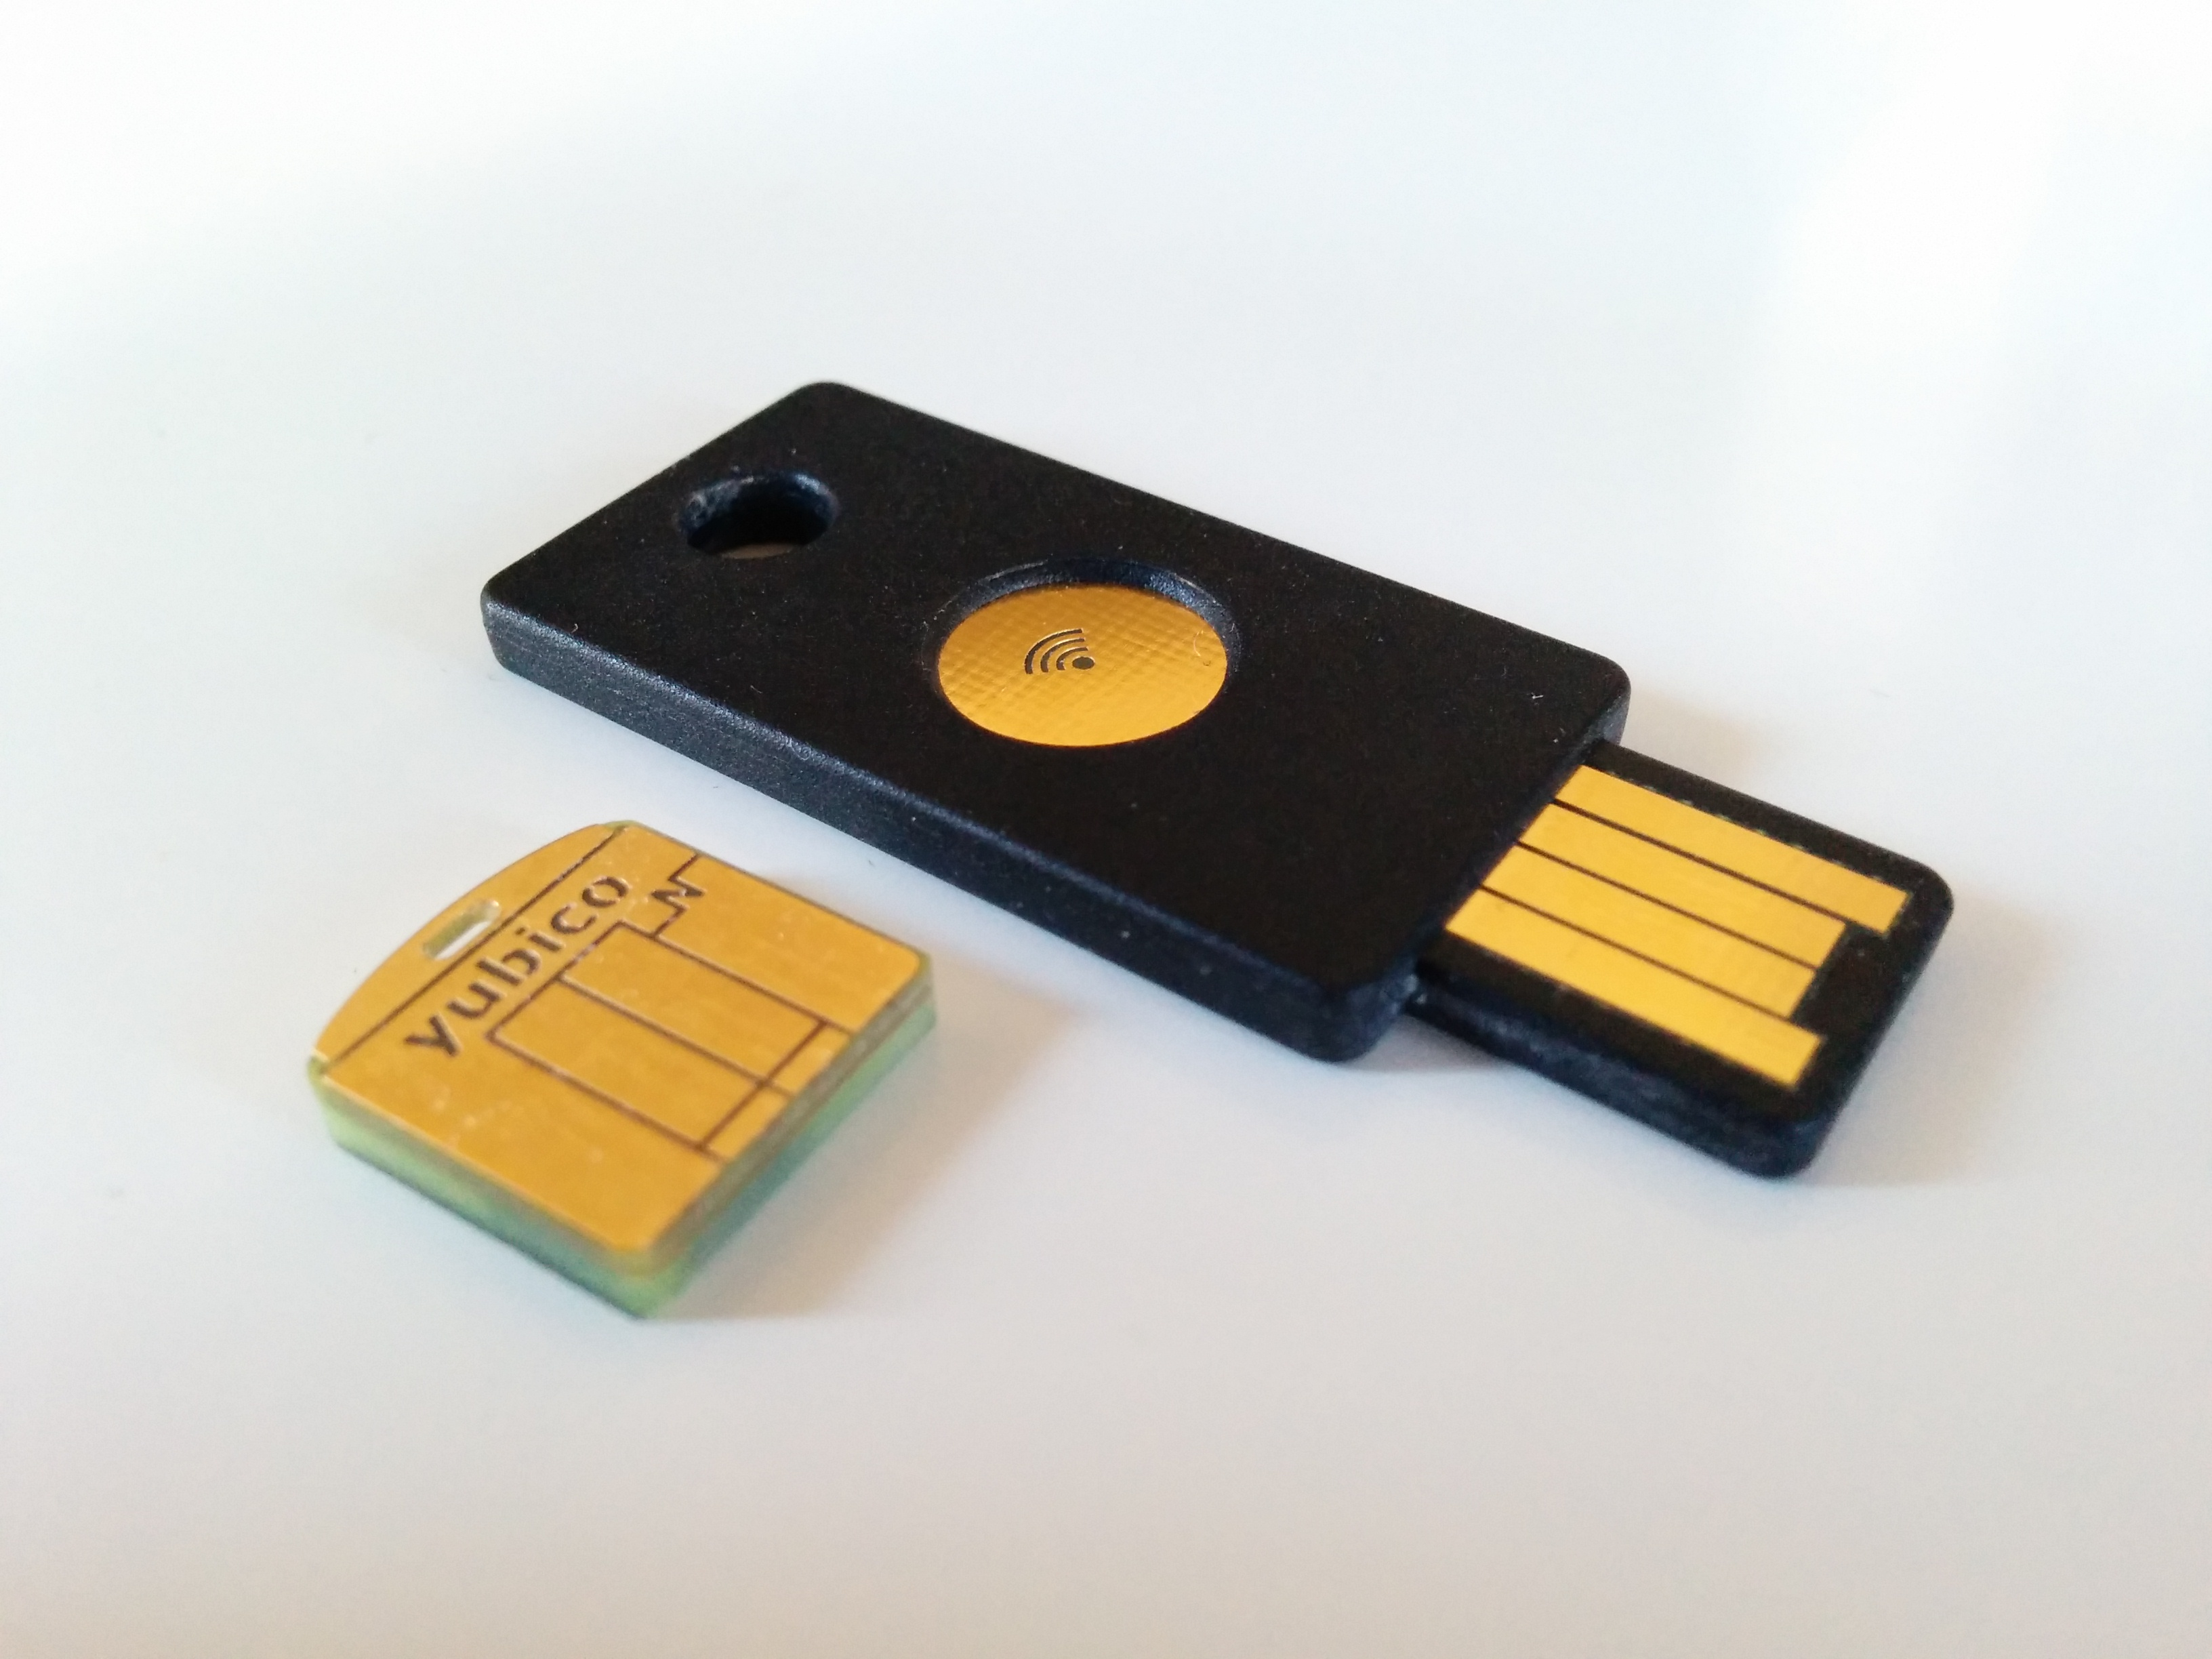 how to use yubikey neo